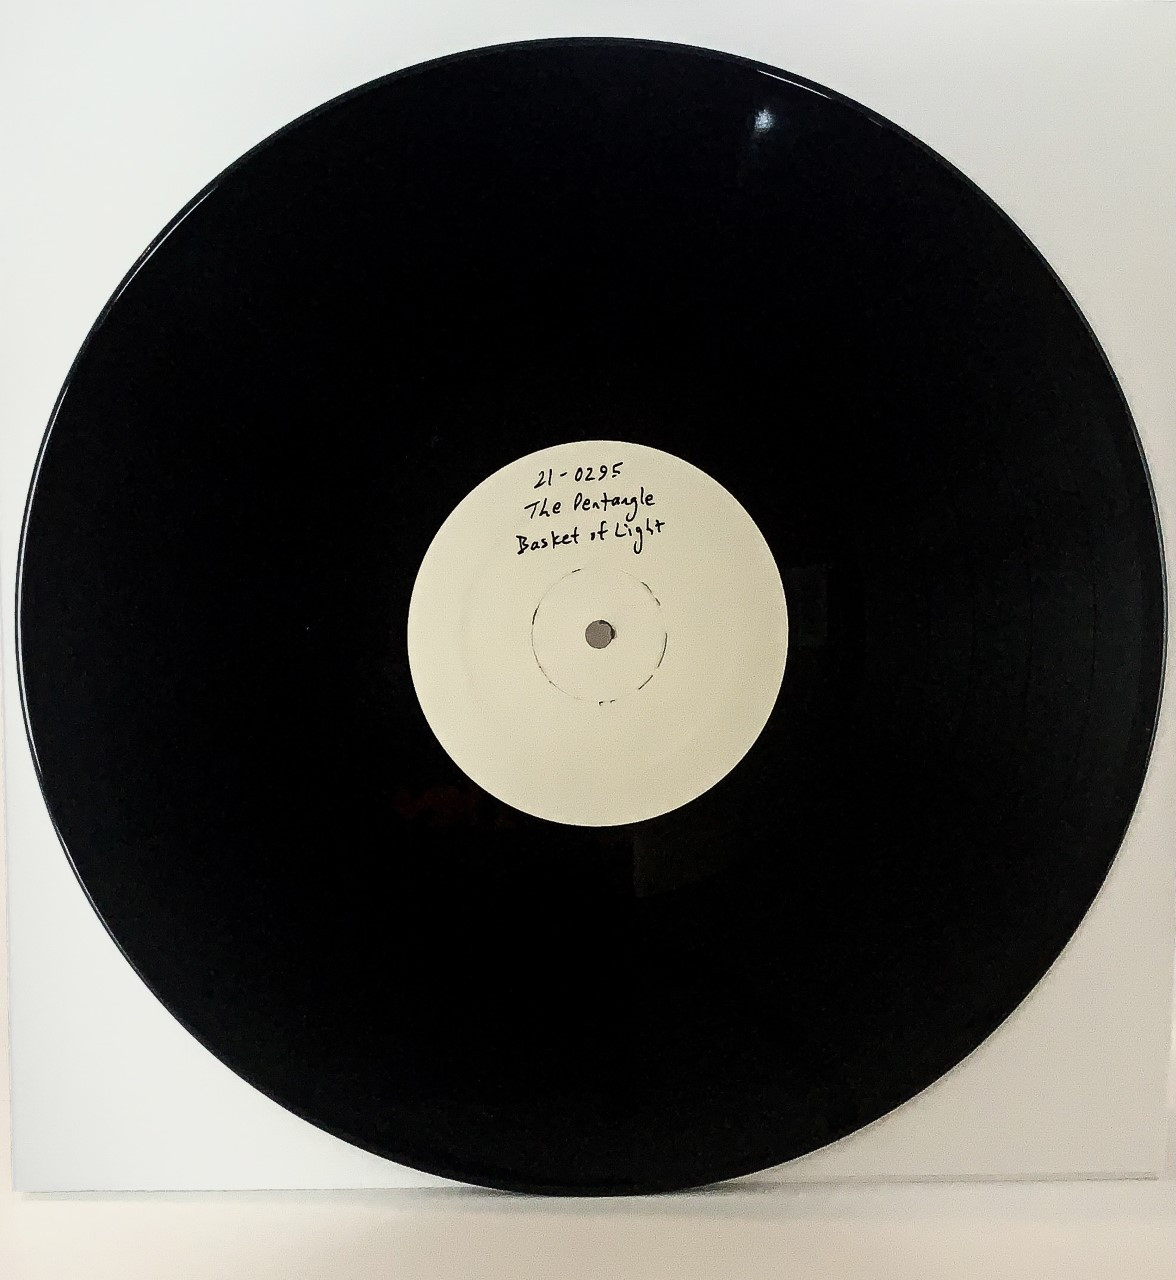 Basket of Light by The Pentangle LP Test Pressing available now.